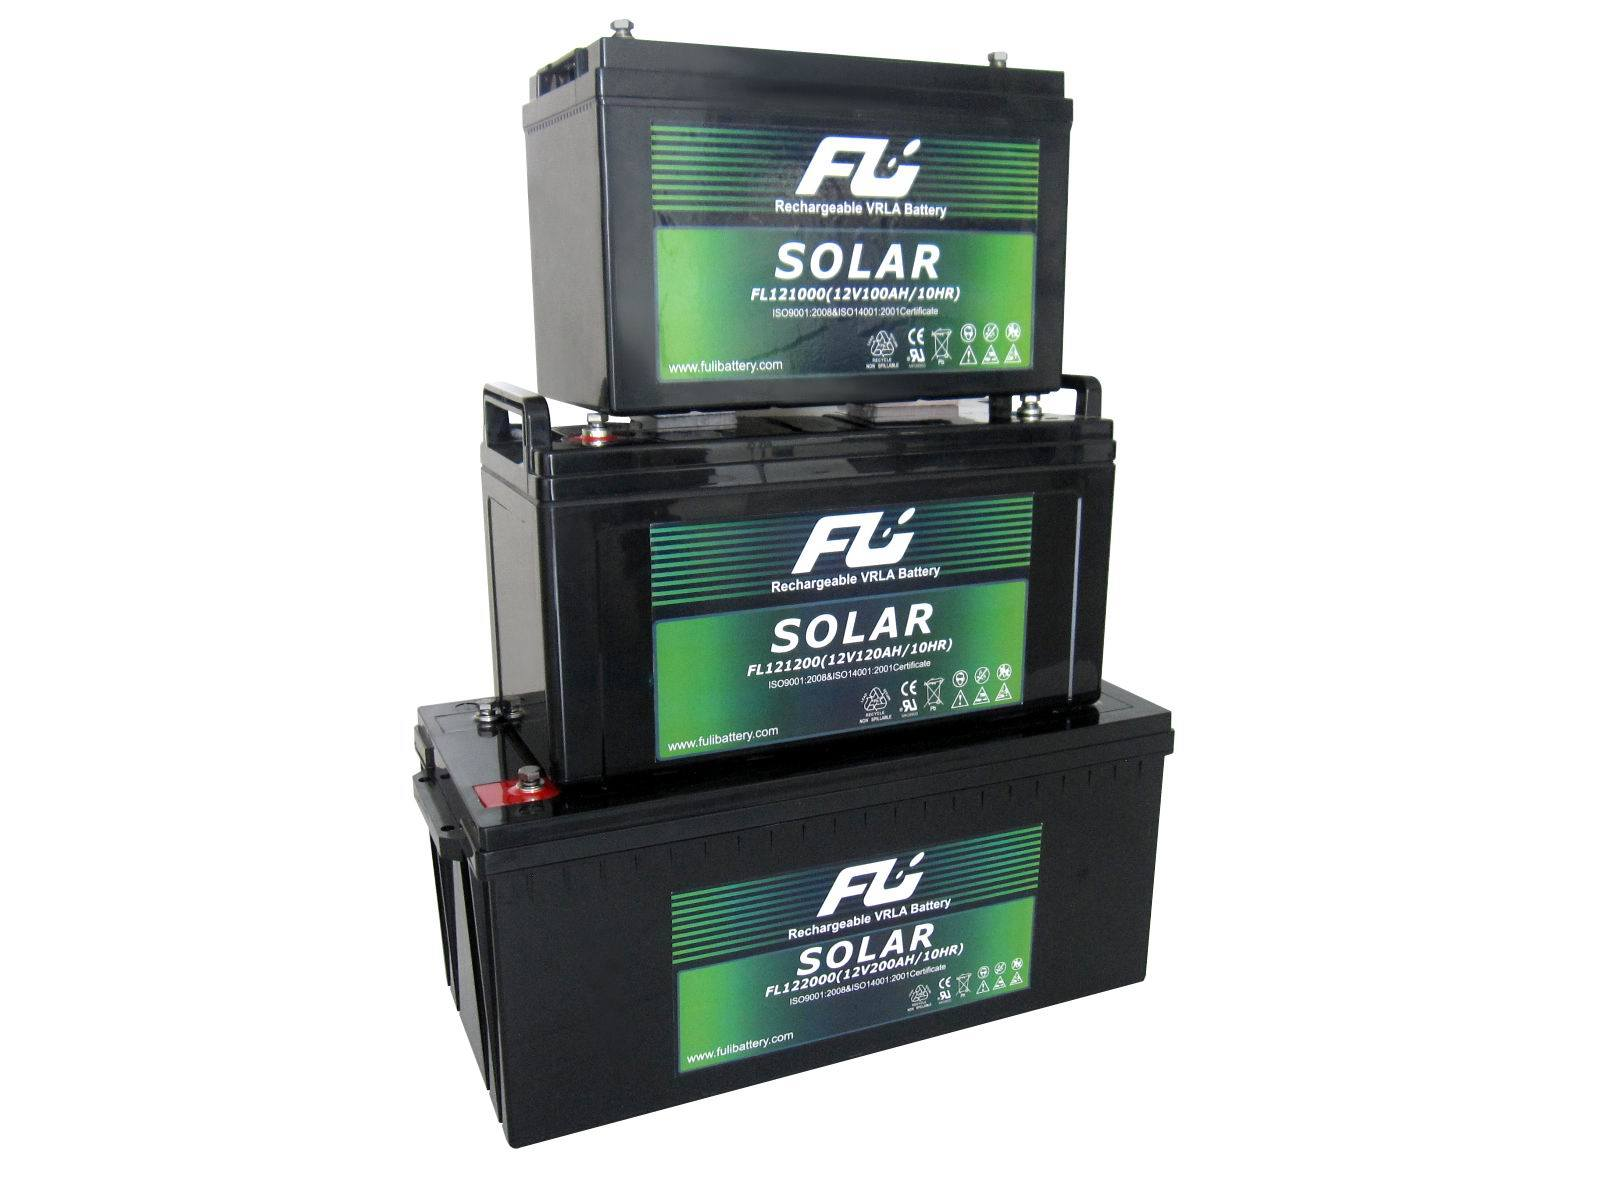 best solar panel to charge car battery photovoltaic autos post. Black Bedroom Furniture Sets. Home Design Ideas